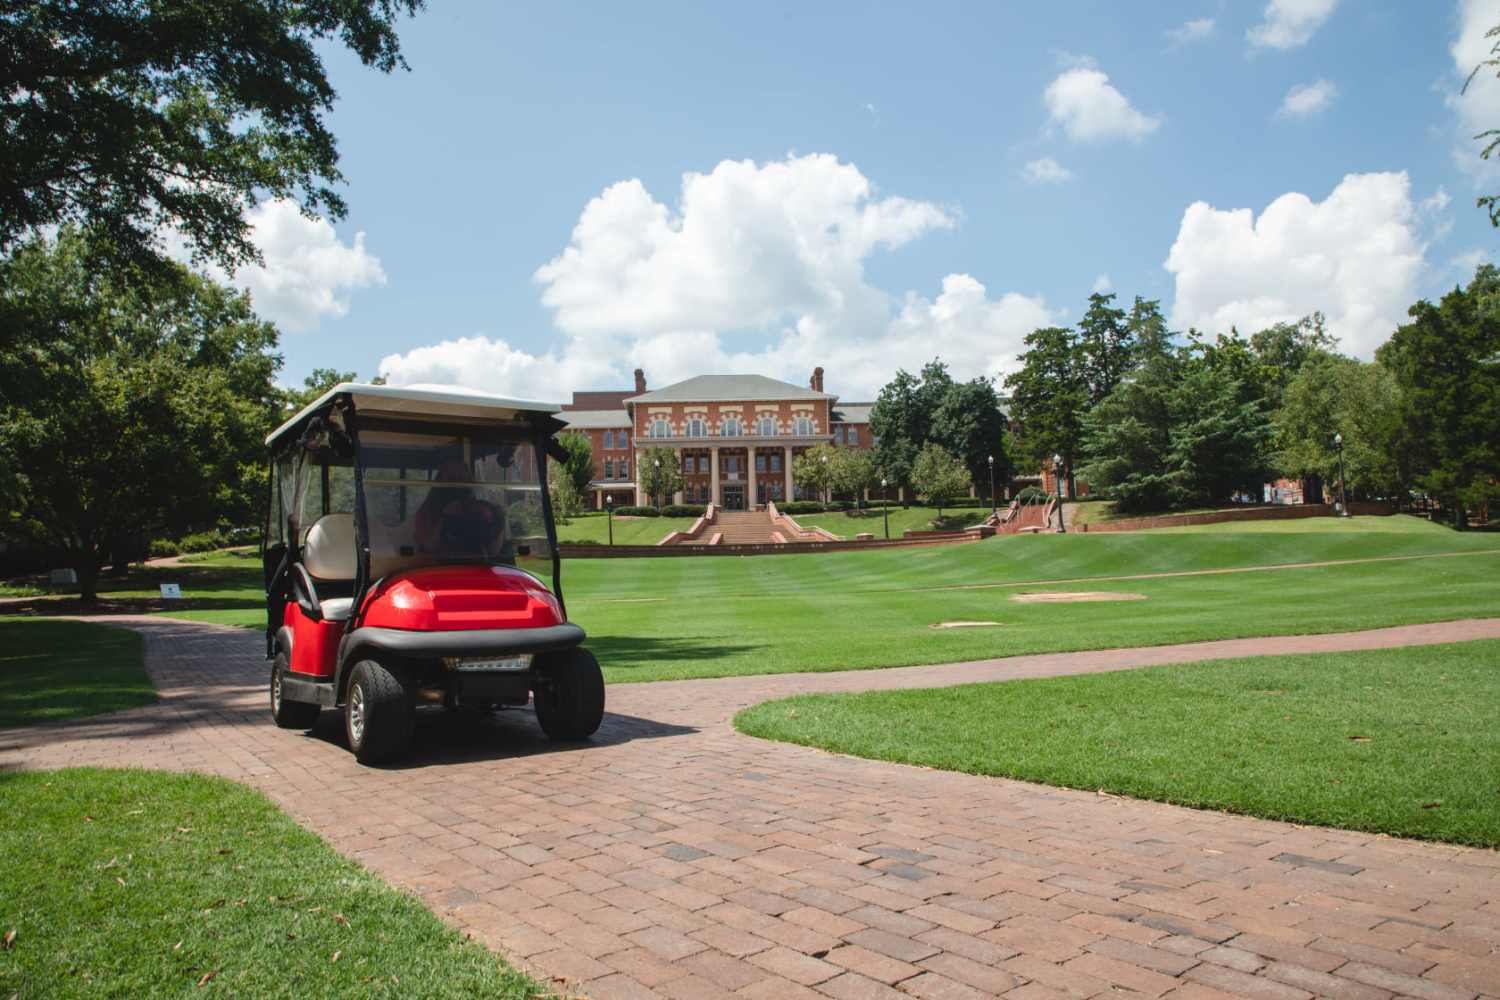 A red Wolfpack Pick Up golf cart drives along the brick path on the Court of Carolina